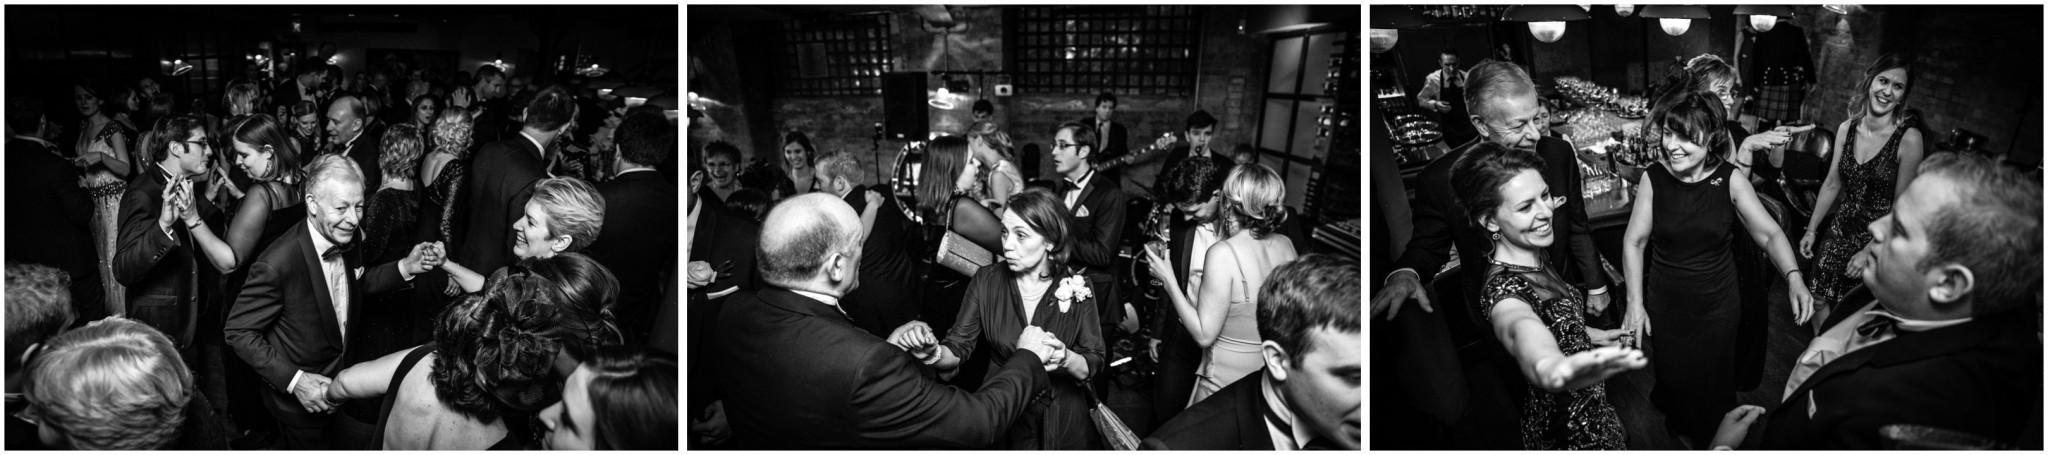 hixter-bankside-wedding-photographer-063